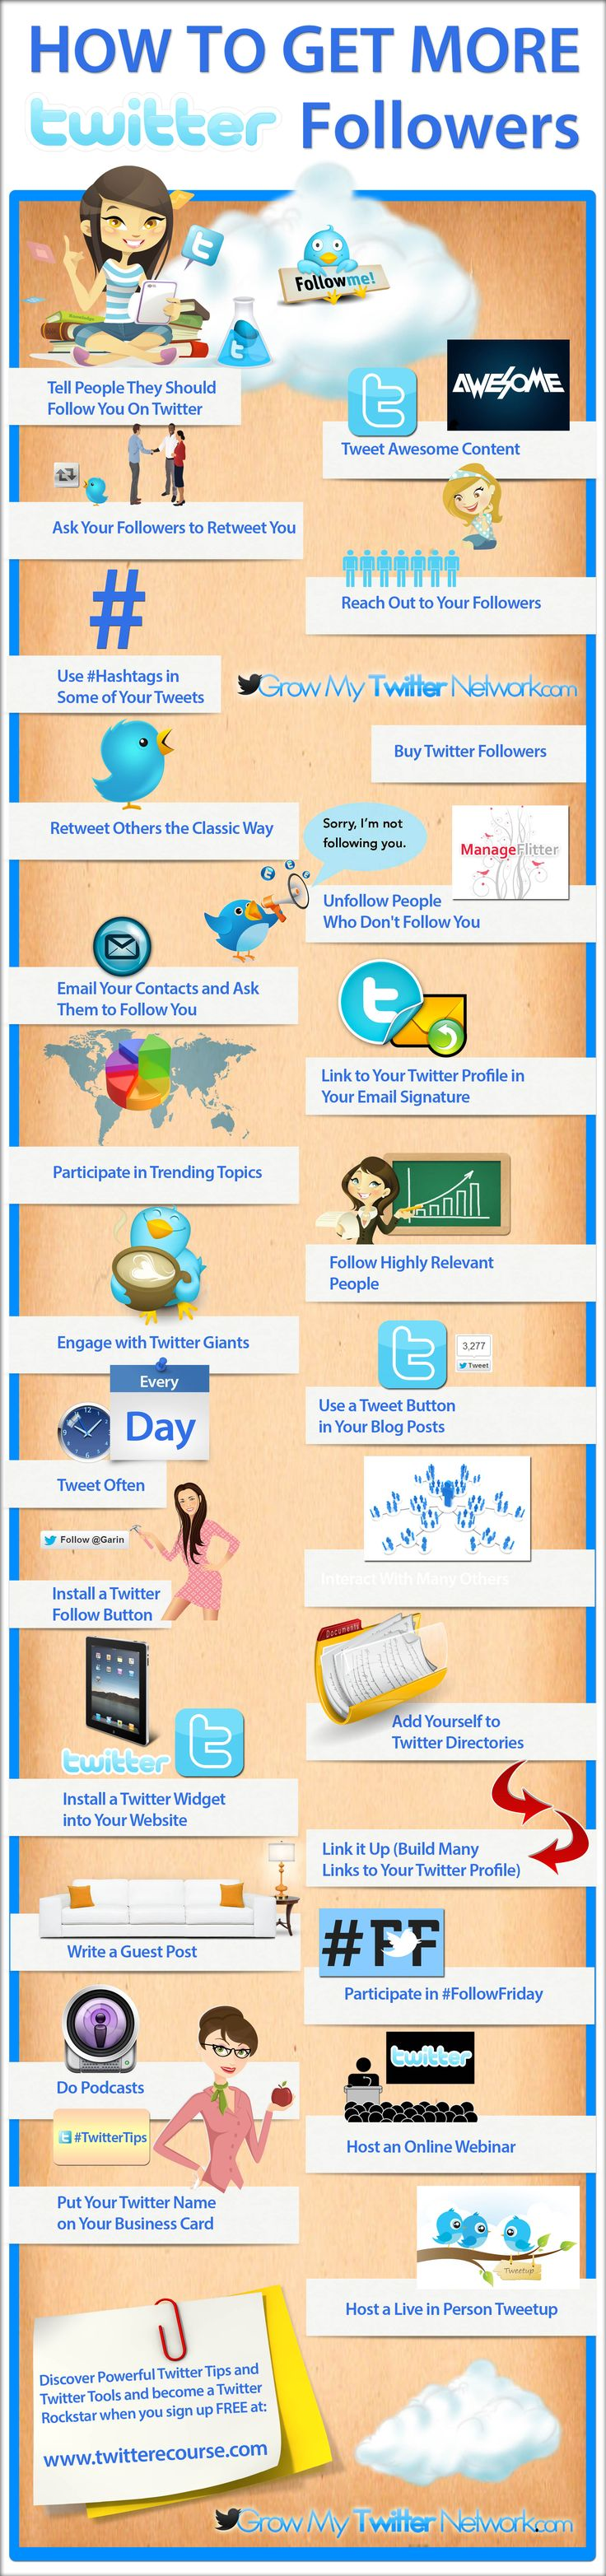 Check out this awesome new infographic and discover how to get more Twitter followers and easily grow a massive and powerful #Twitter network! Featurin